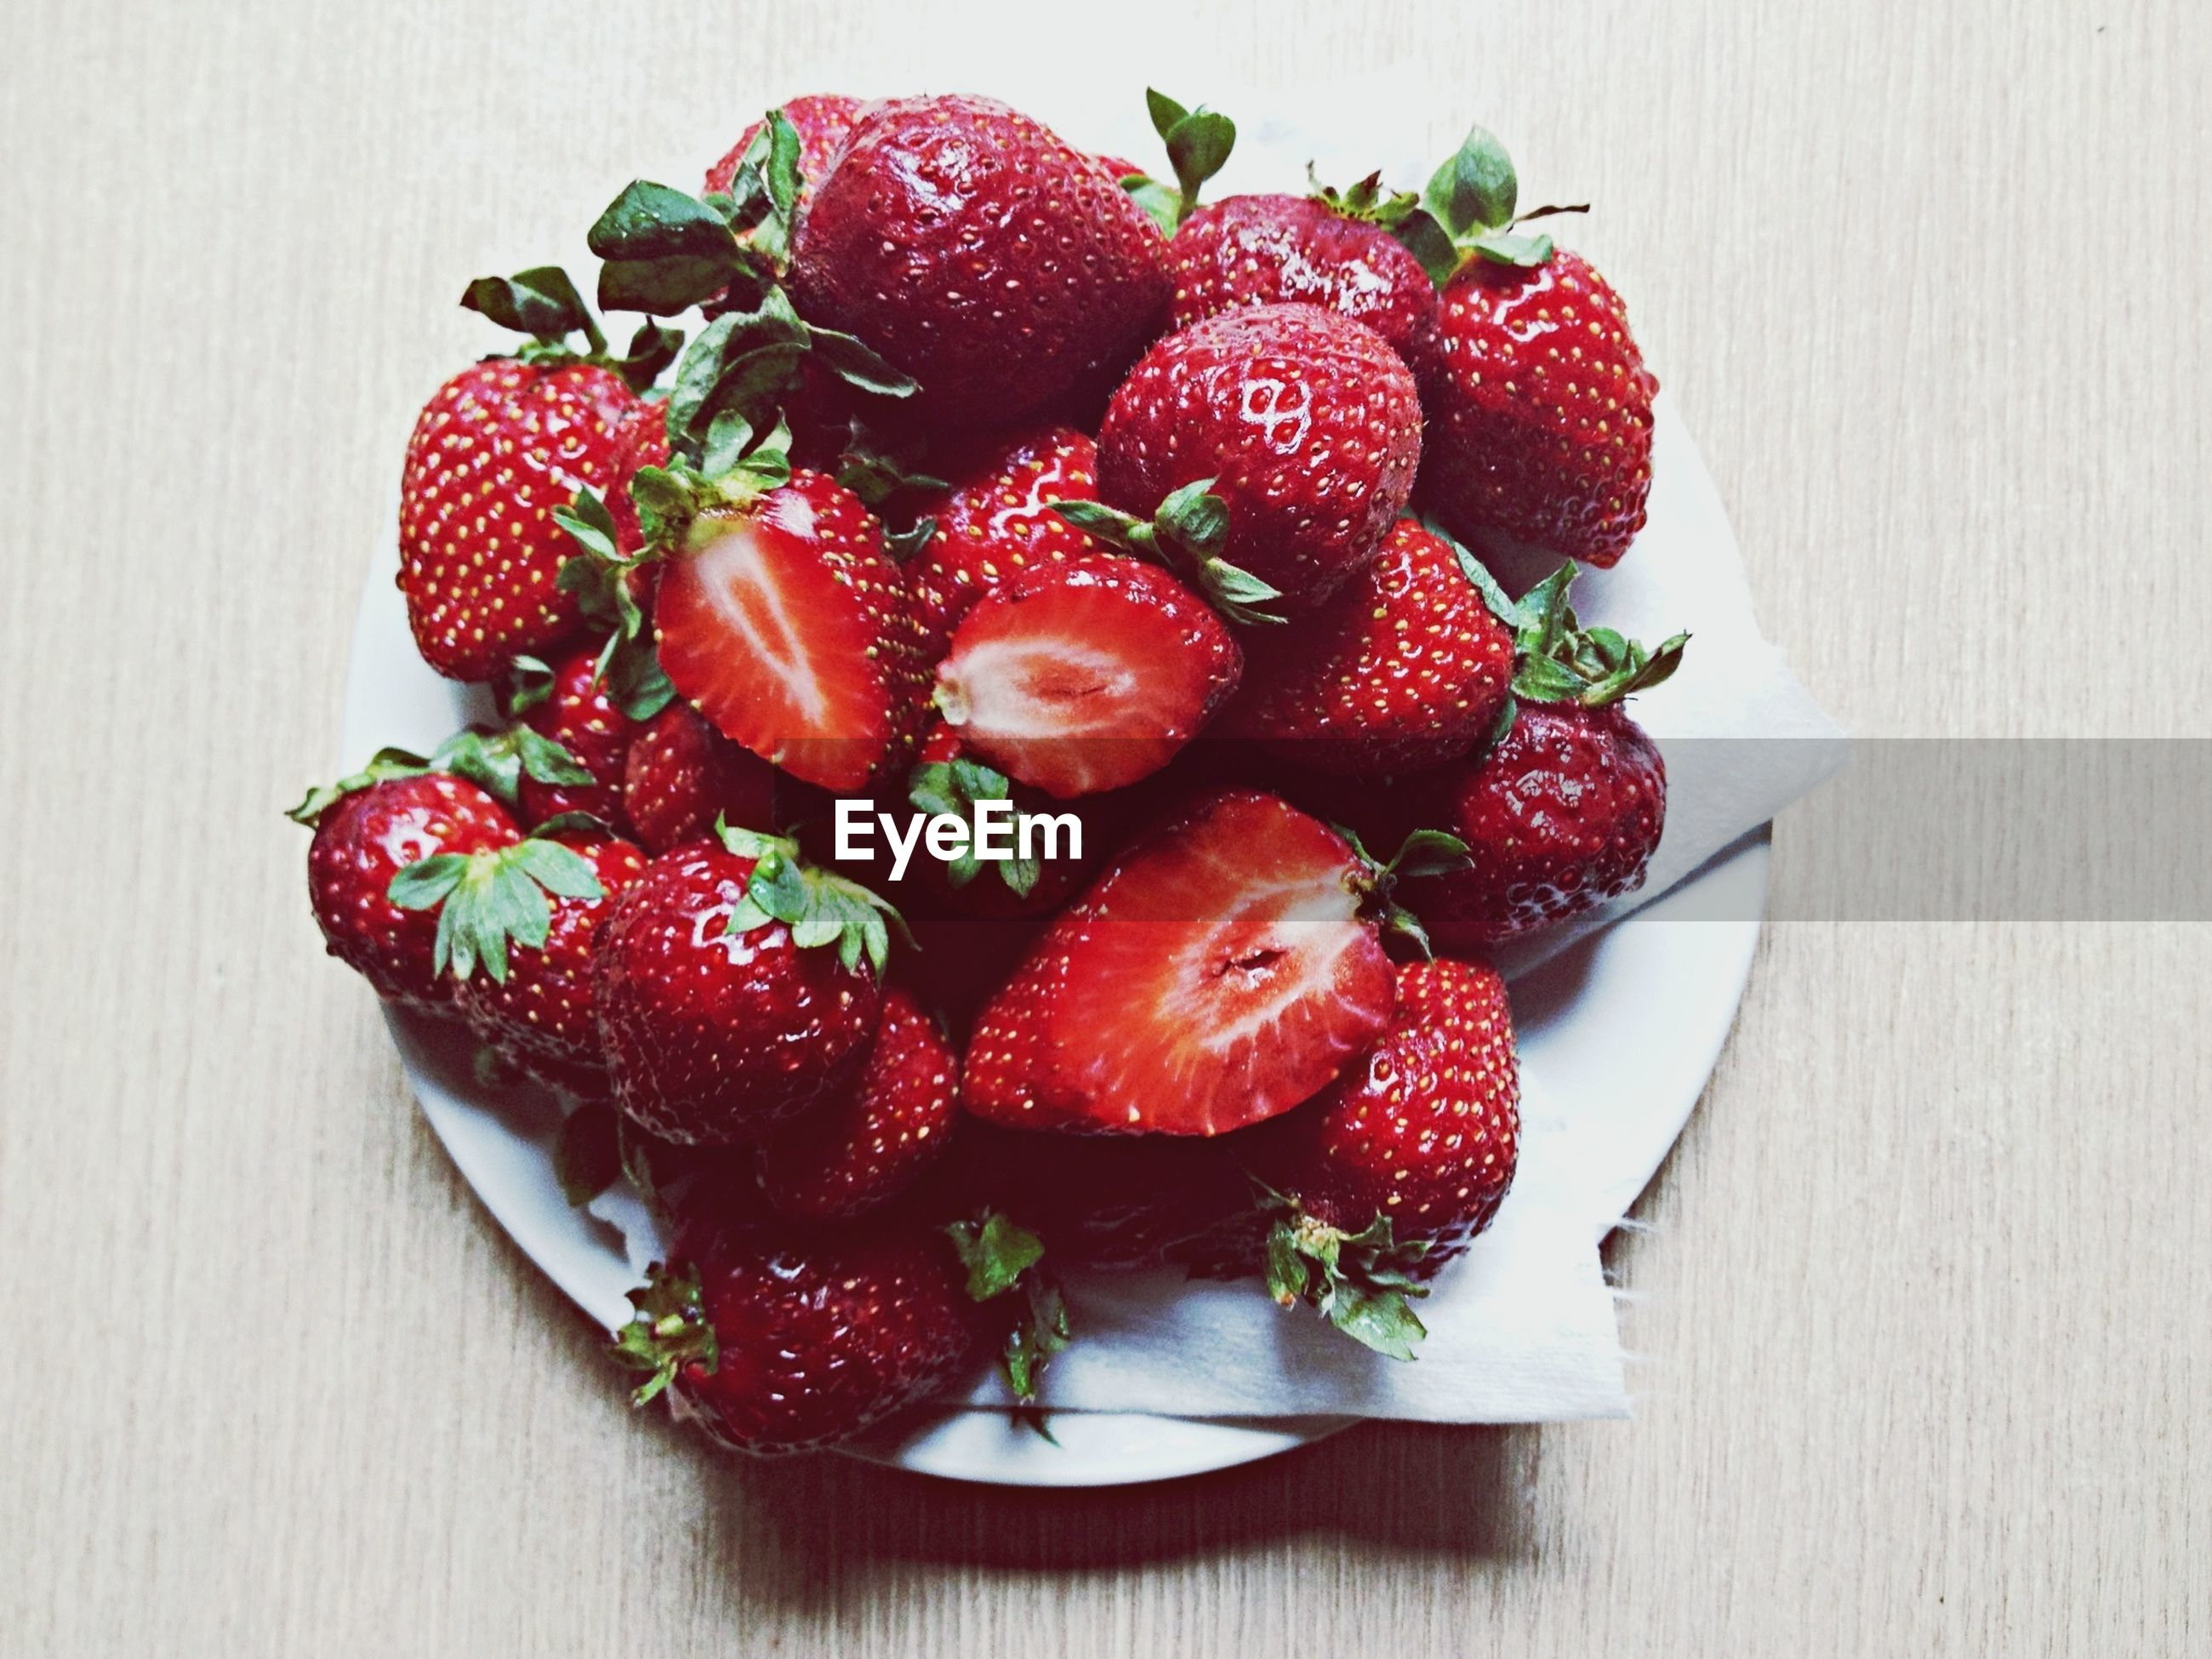 food and drink, fruit, freshness, food, red, indoors, strawberry, healthy eating, still life, berry fruit, table, raspberry, berry, high angle view, ripe, close-up, cherry, juicy, directly above, bowl